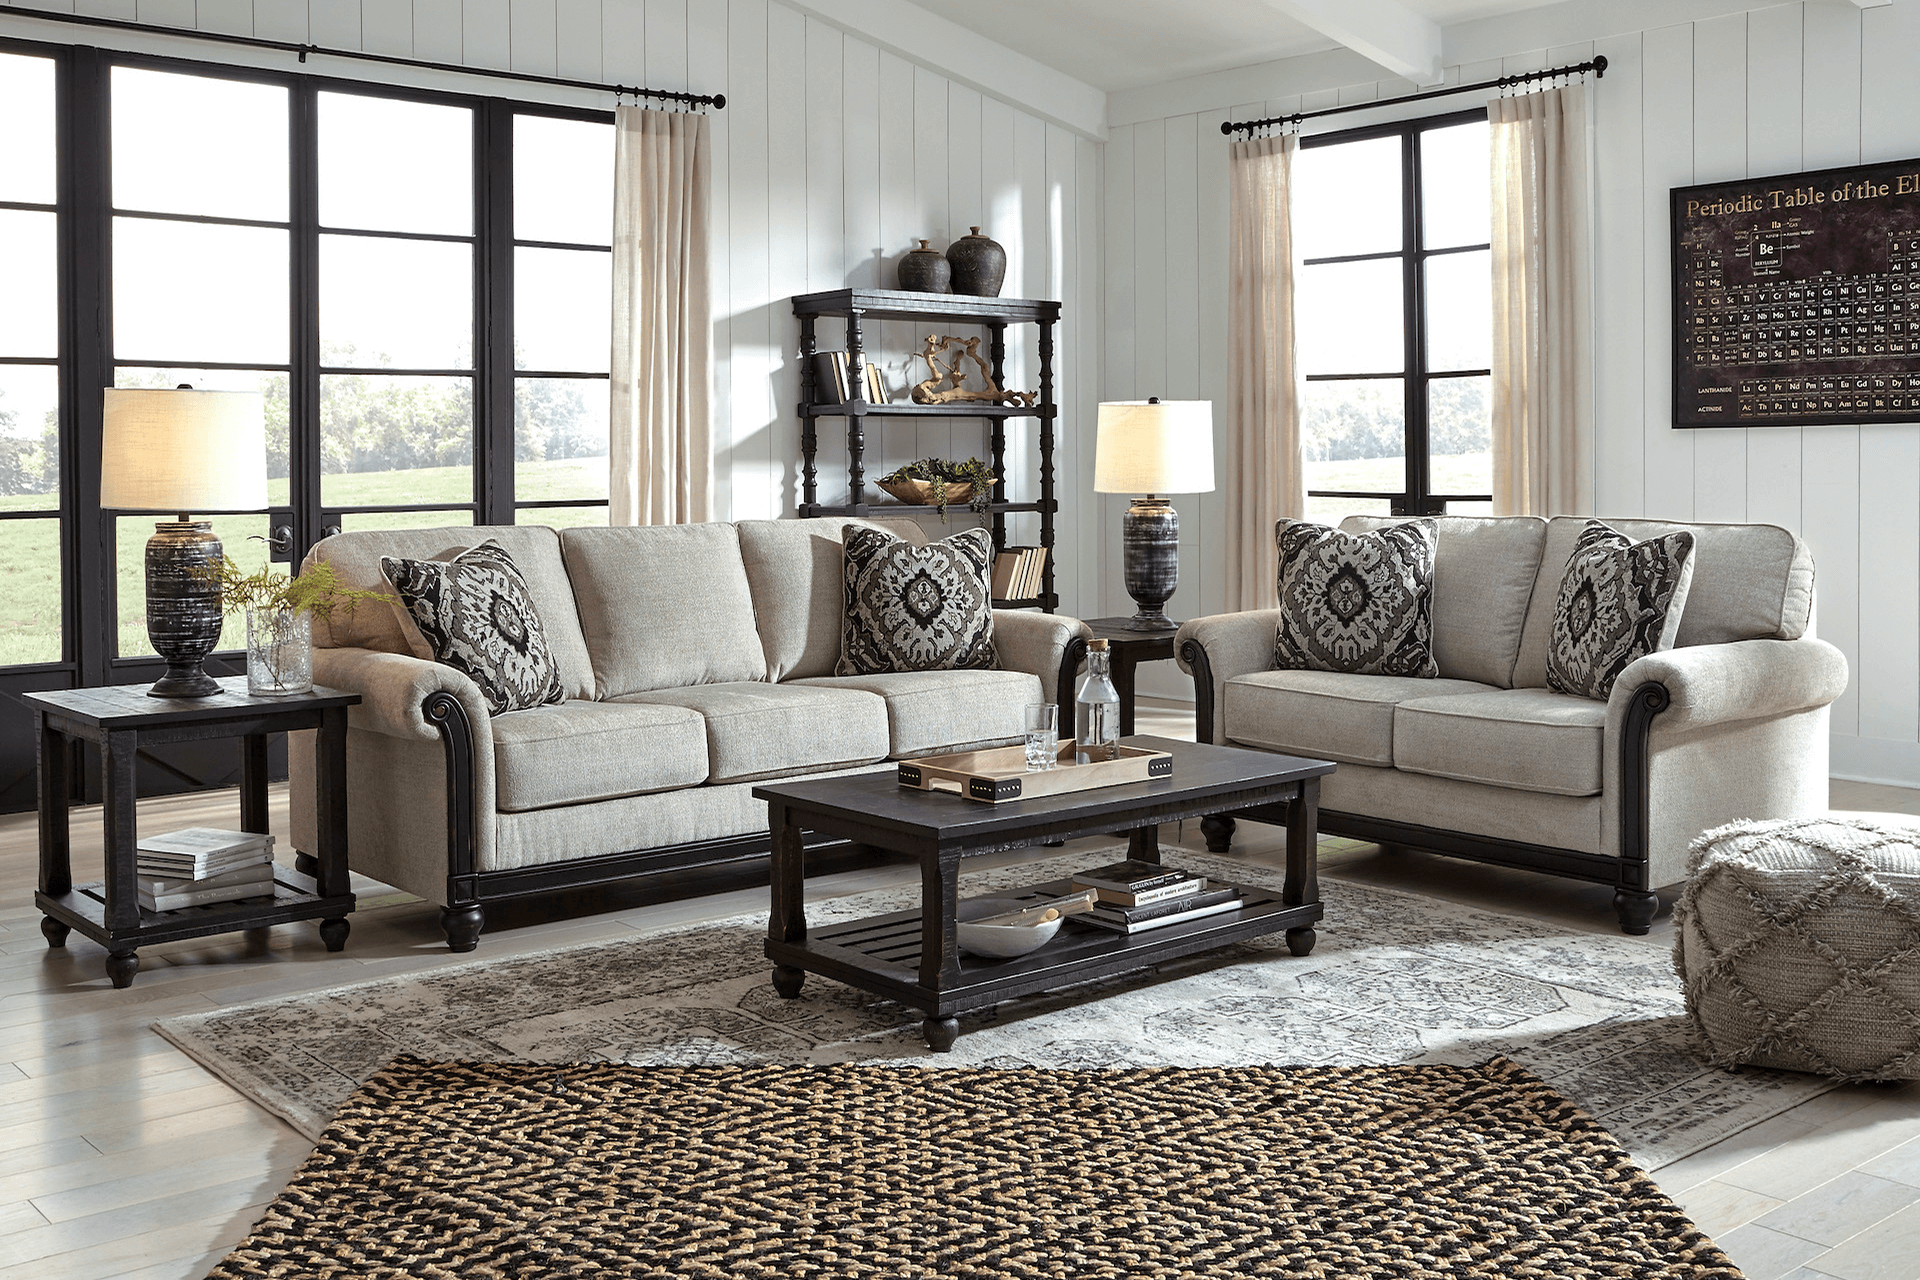 Atlantic_Furniture-Sofa_Sets-77304_T145_hi-res